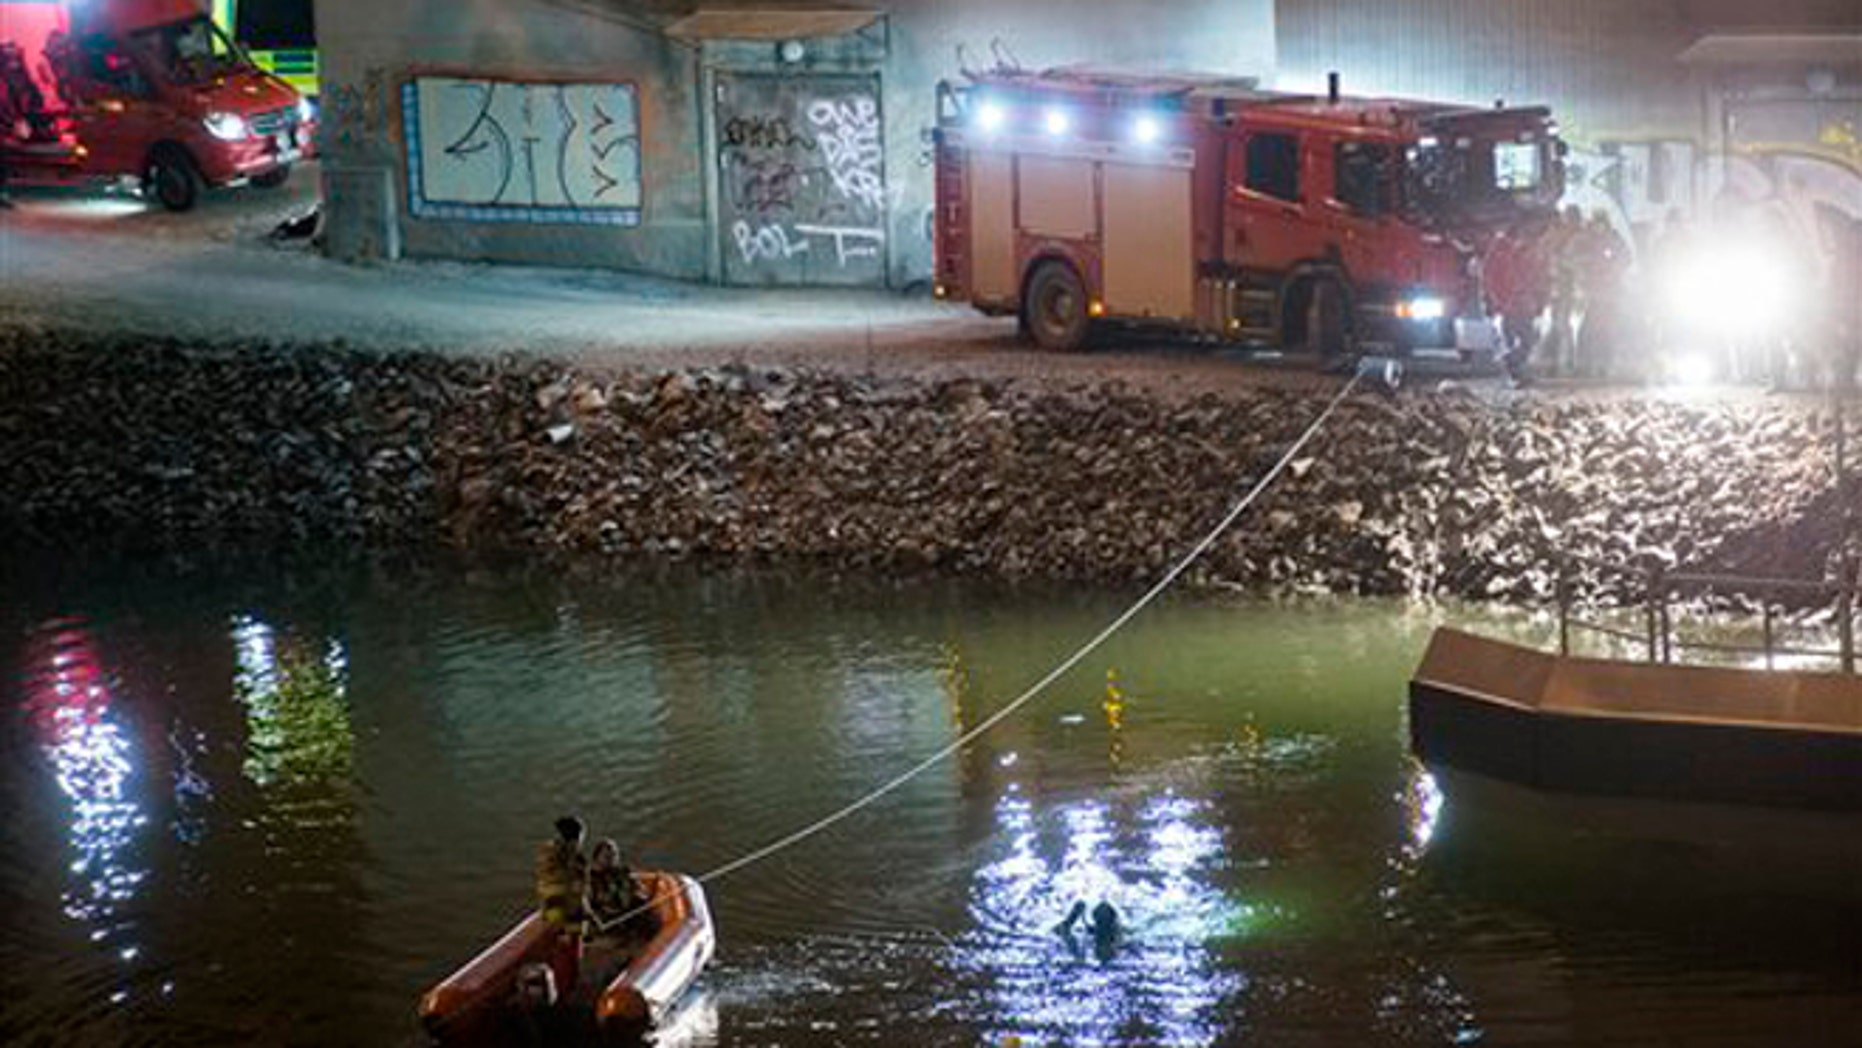 Divers and rescue service personnel search for the victims of the deadly car crash in the canal under the E4 highway bridge in Sodertalje, Sweden, late Saturday, Feb.13, 2016.  (Johan Nilsson/TT News Agency via AP)